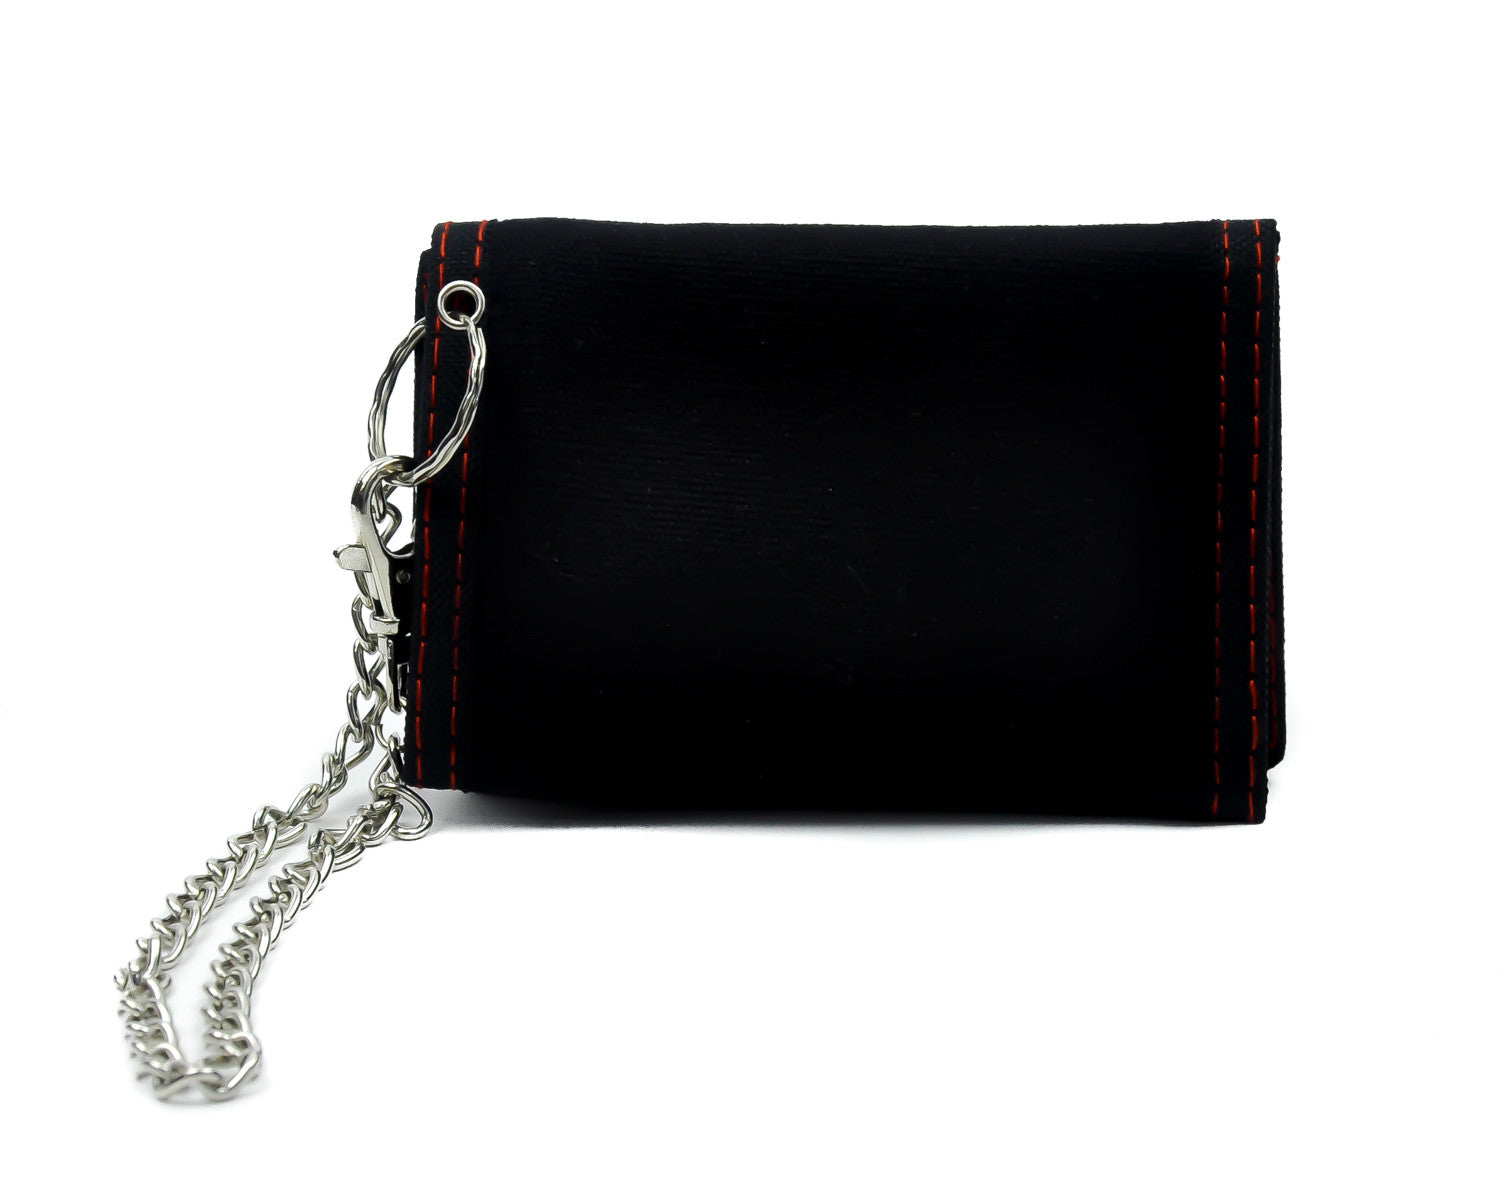 California Flag Tri-fold Wallet with Chain Alternative Clothing So Cal Pride